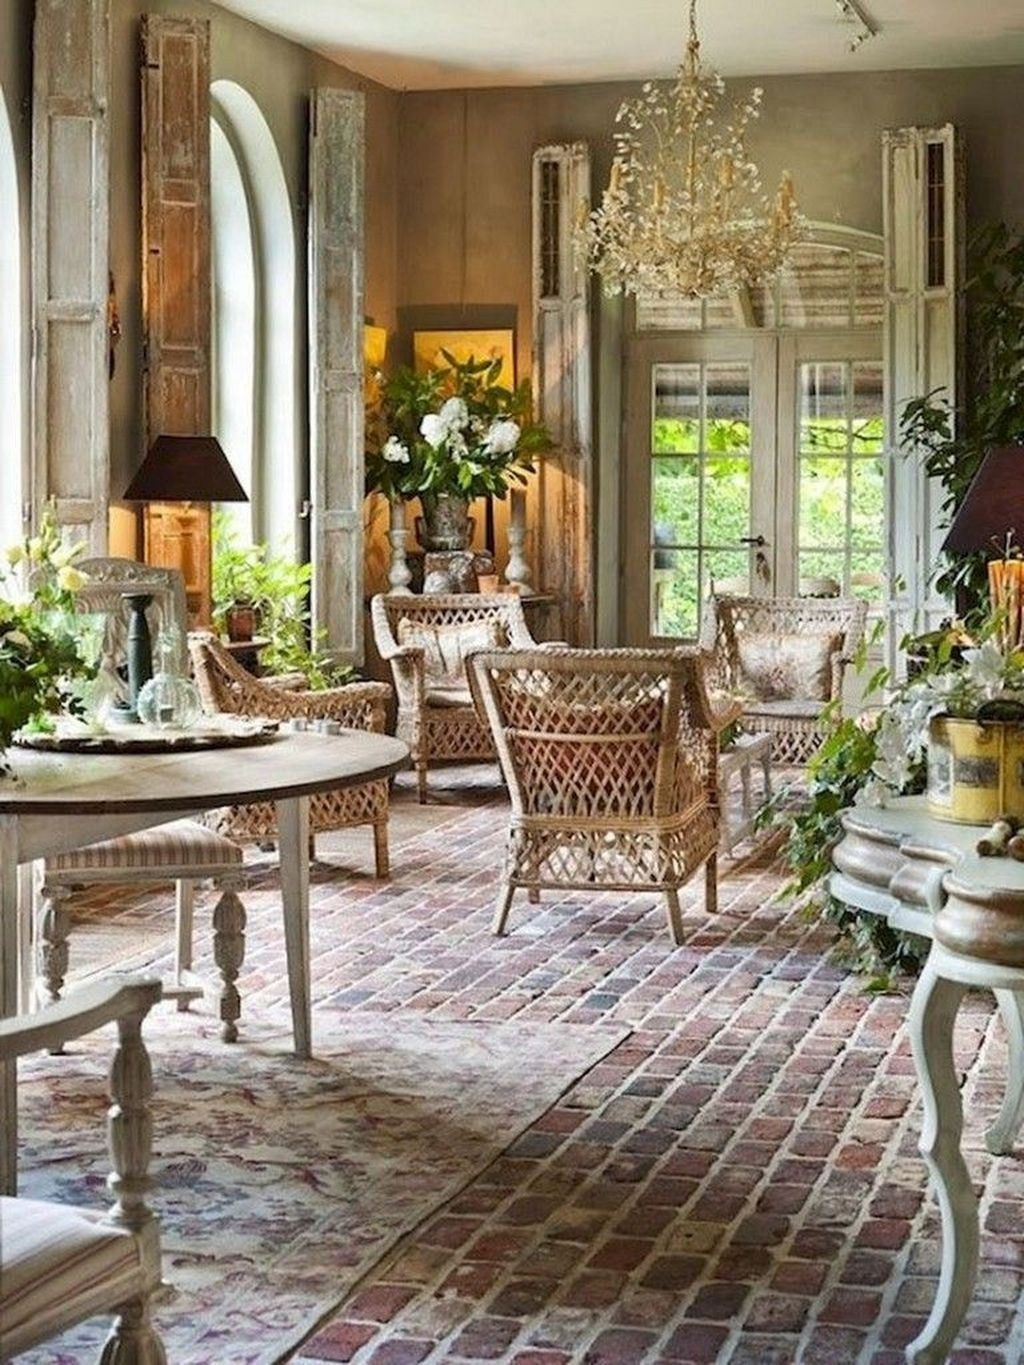 Best French Home Decoration Ideas 07 French Country House French Country Design French Country Living Room